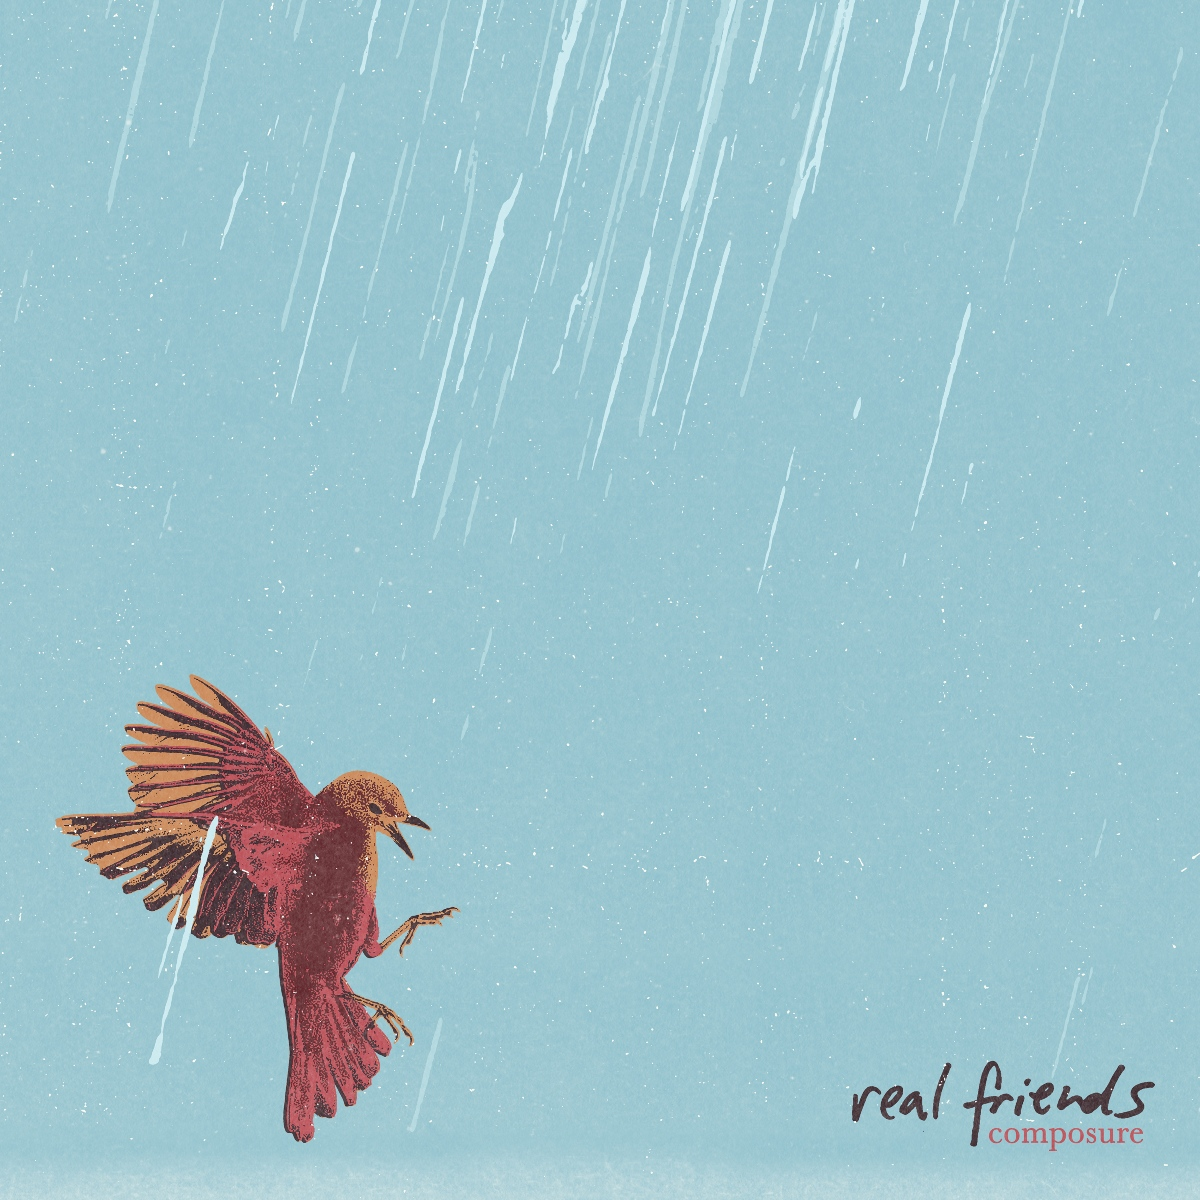 real friends composure portada